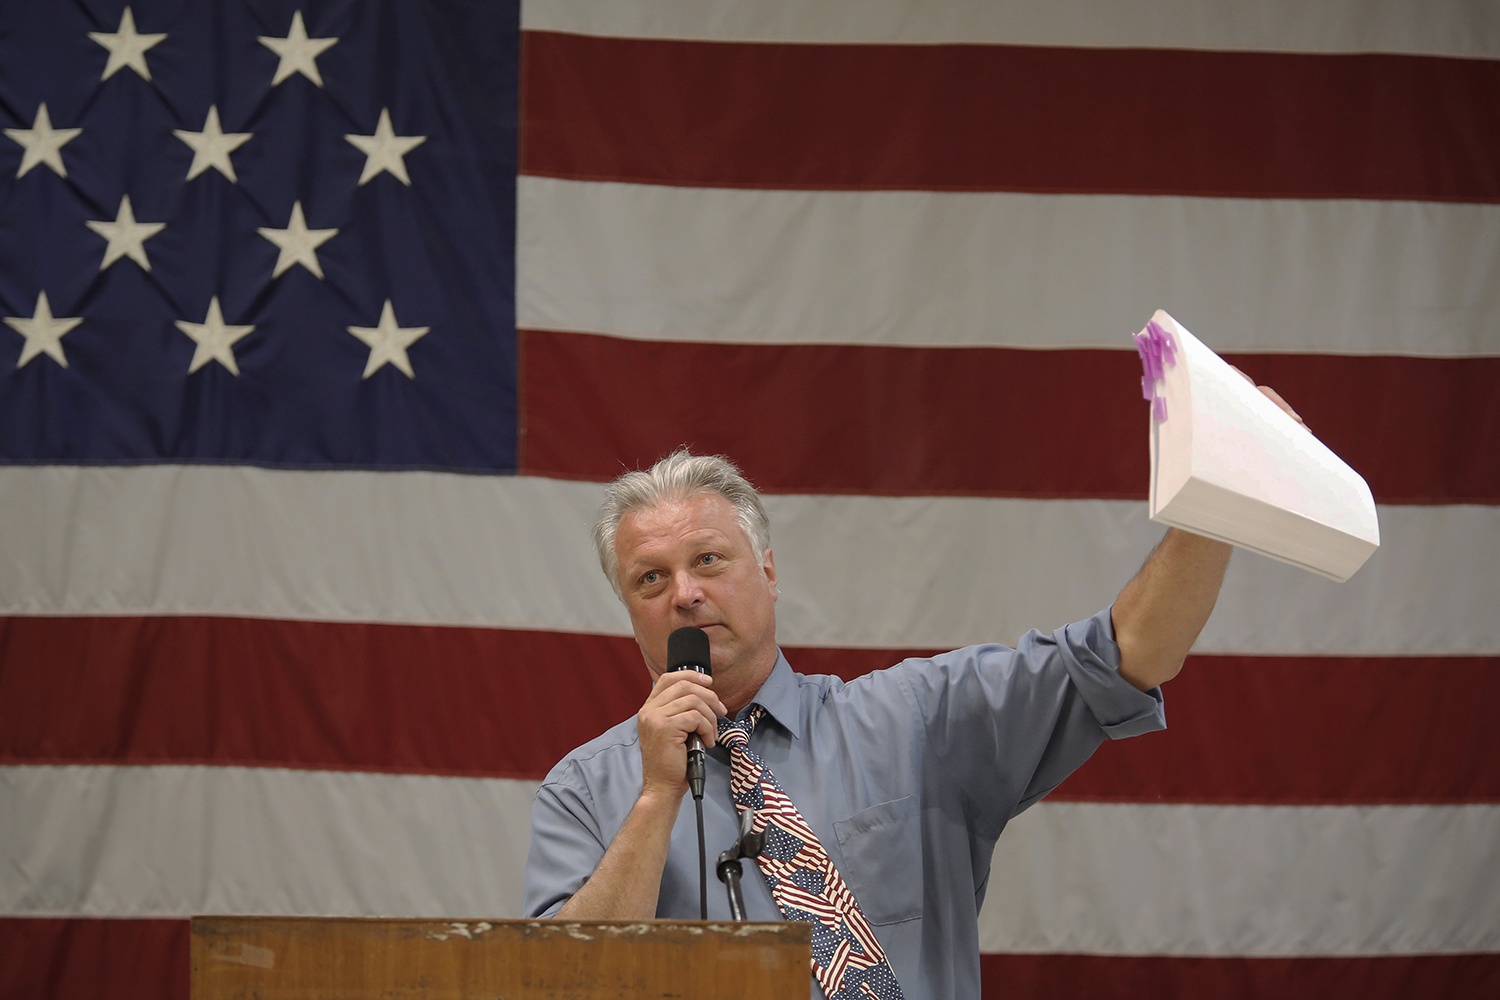 George Orzech, chairman of the Police and Fire Retirement System, holds up a large manual that was emailed out on CD during Detroit Police and Fire Pension Fund Meeting on Wed., June 4, 2014 at the IBEW Local 58 in Detroit. Tim Galloway for The New York Times